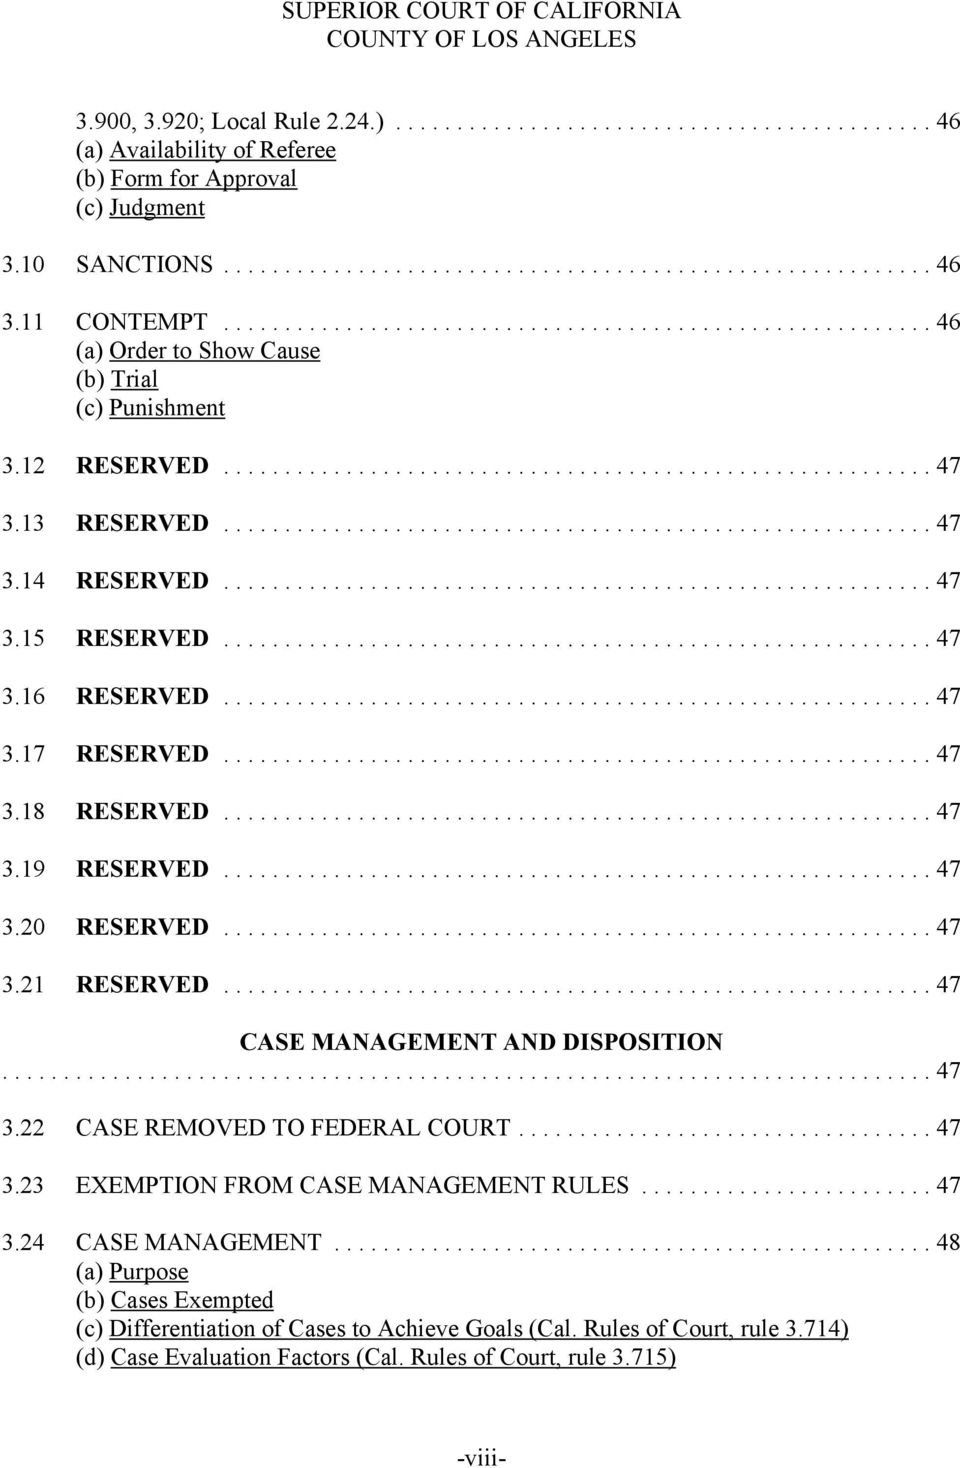 ..47 3.19 RESERVED...47 3.20 RESERVED...47 3.21 RESERVED...47 CASE MANAGEMENT AND DISPOSITION...47 3.22 CASE REMOVED TO FEDERAL COURT...47 3.23 EXEMPTION FROM CASE MANAGEMENT RULES.